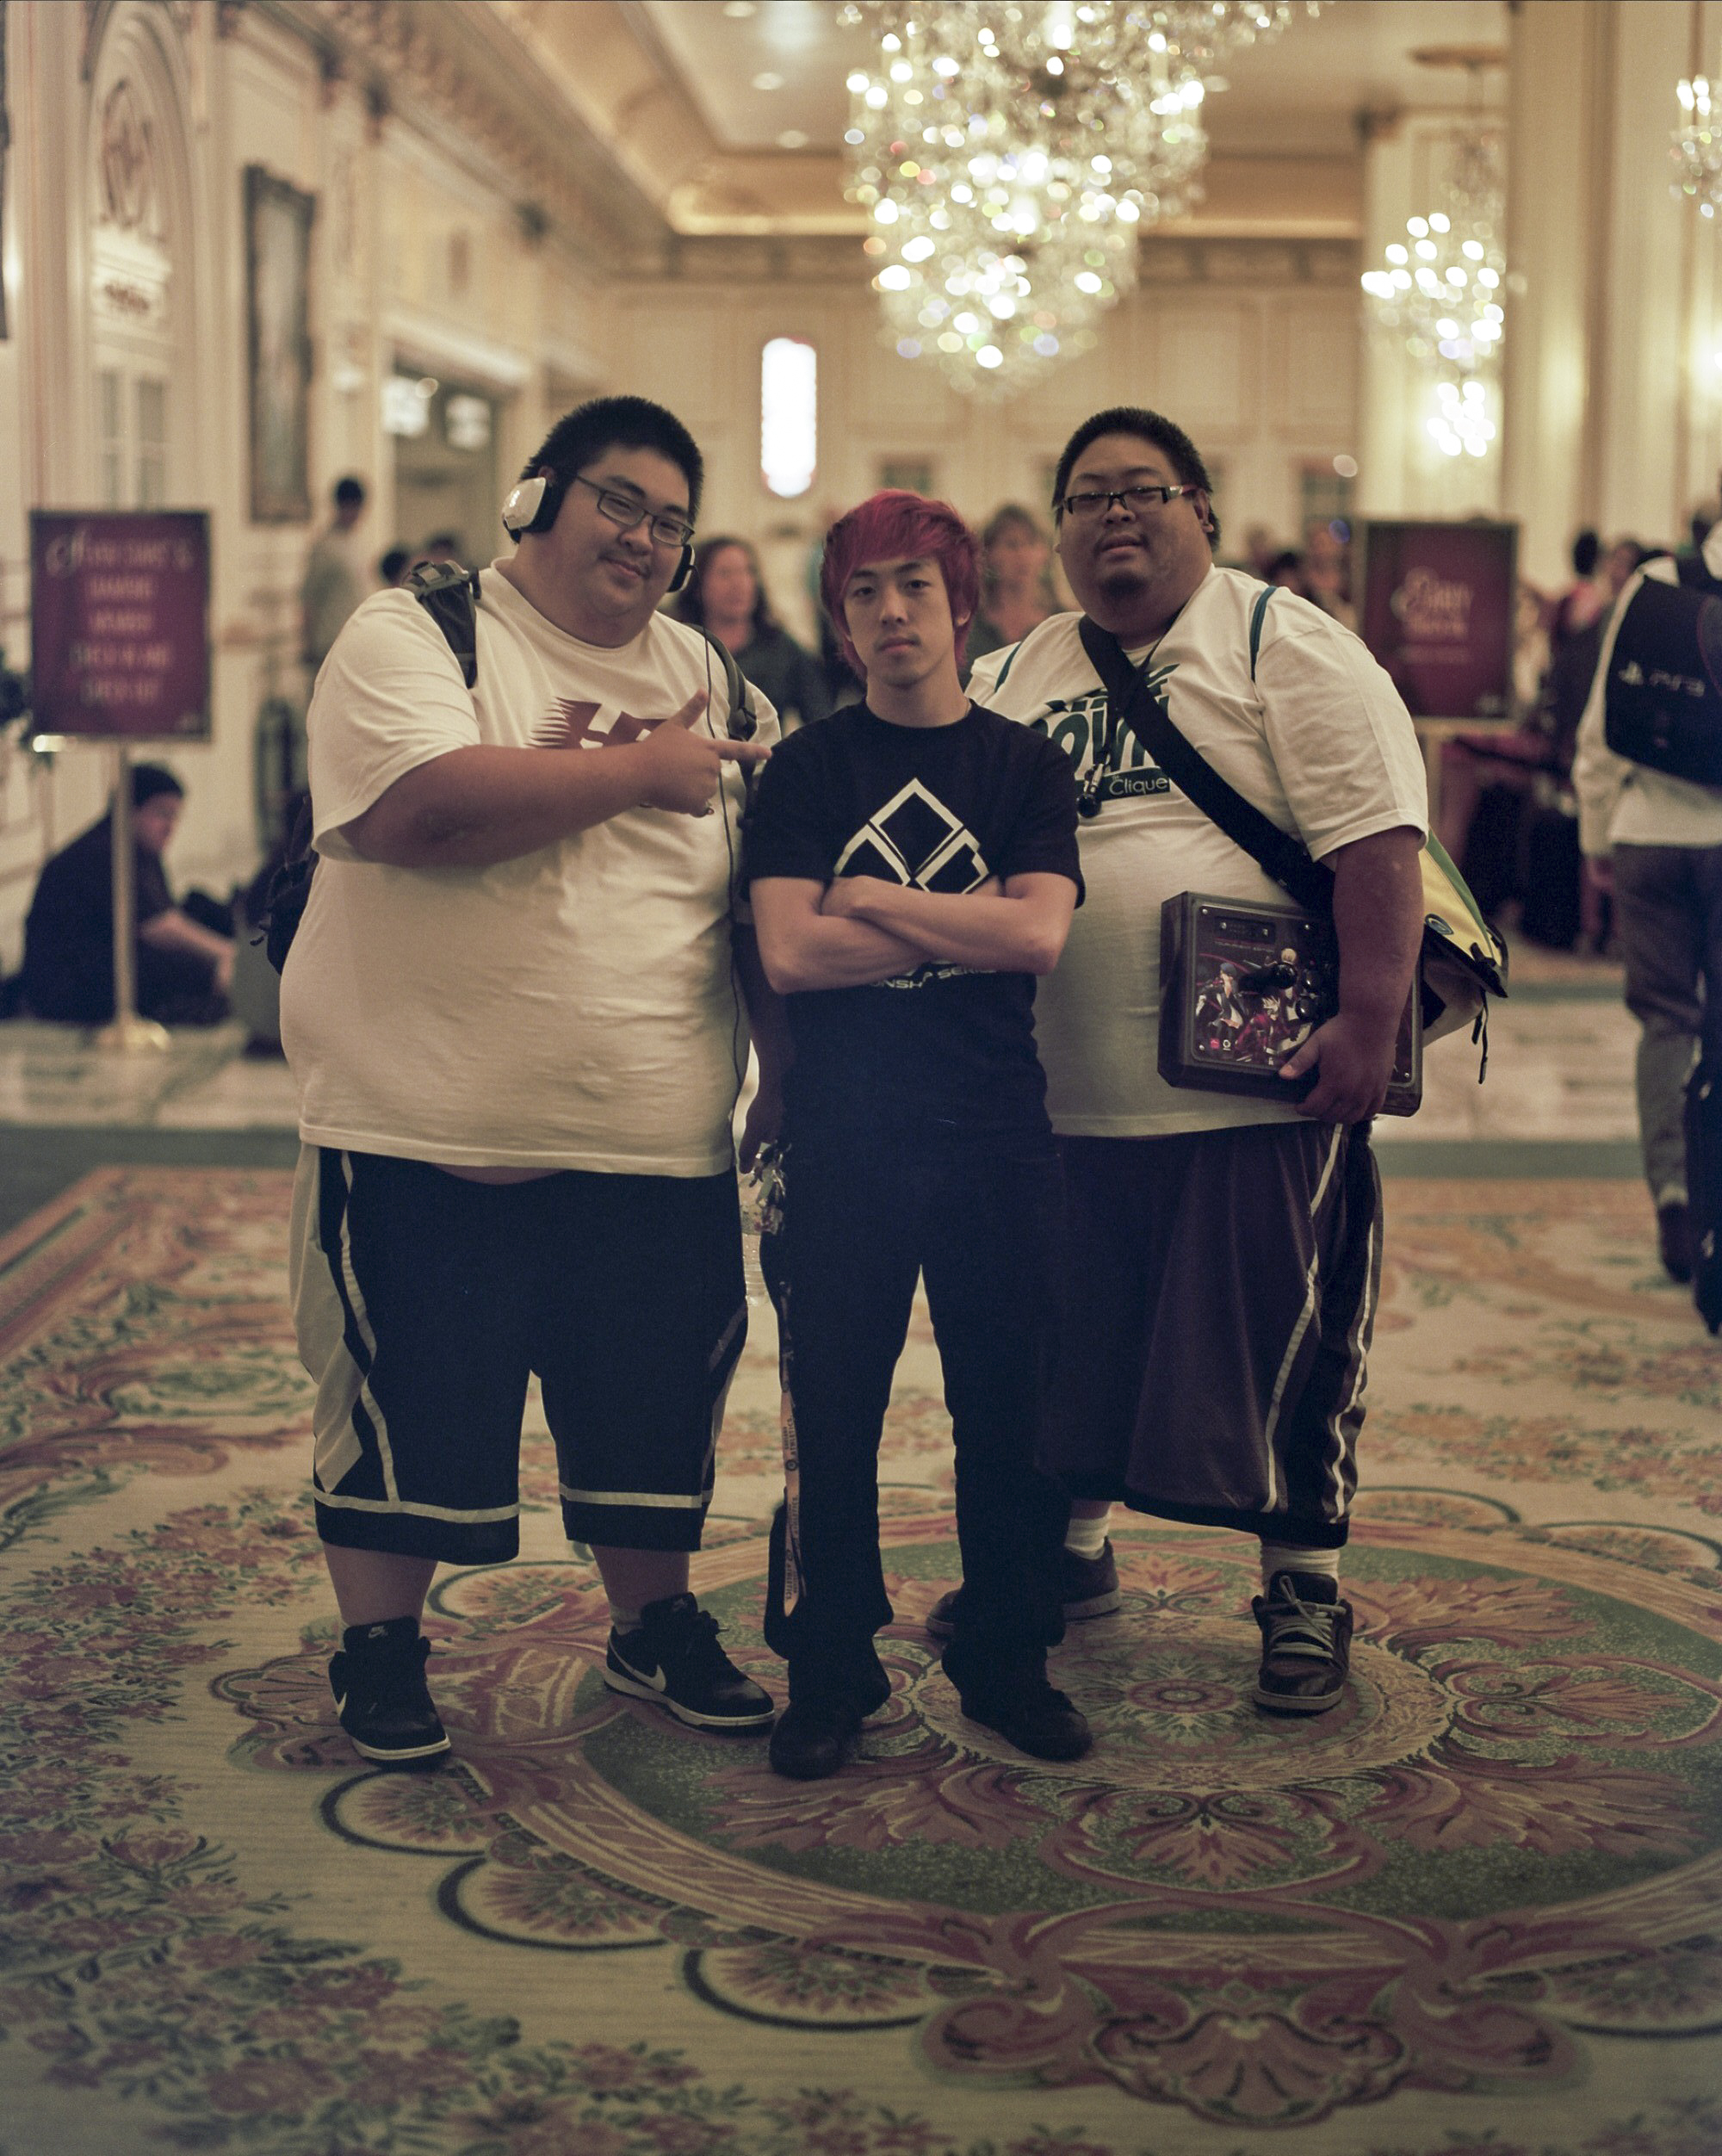 Two sponsors proudly pose with the player they helped support to compete at the EVO competitive gaming tournament at the Paris Hotel, in Las Vegas, Nevada